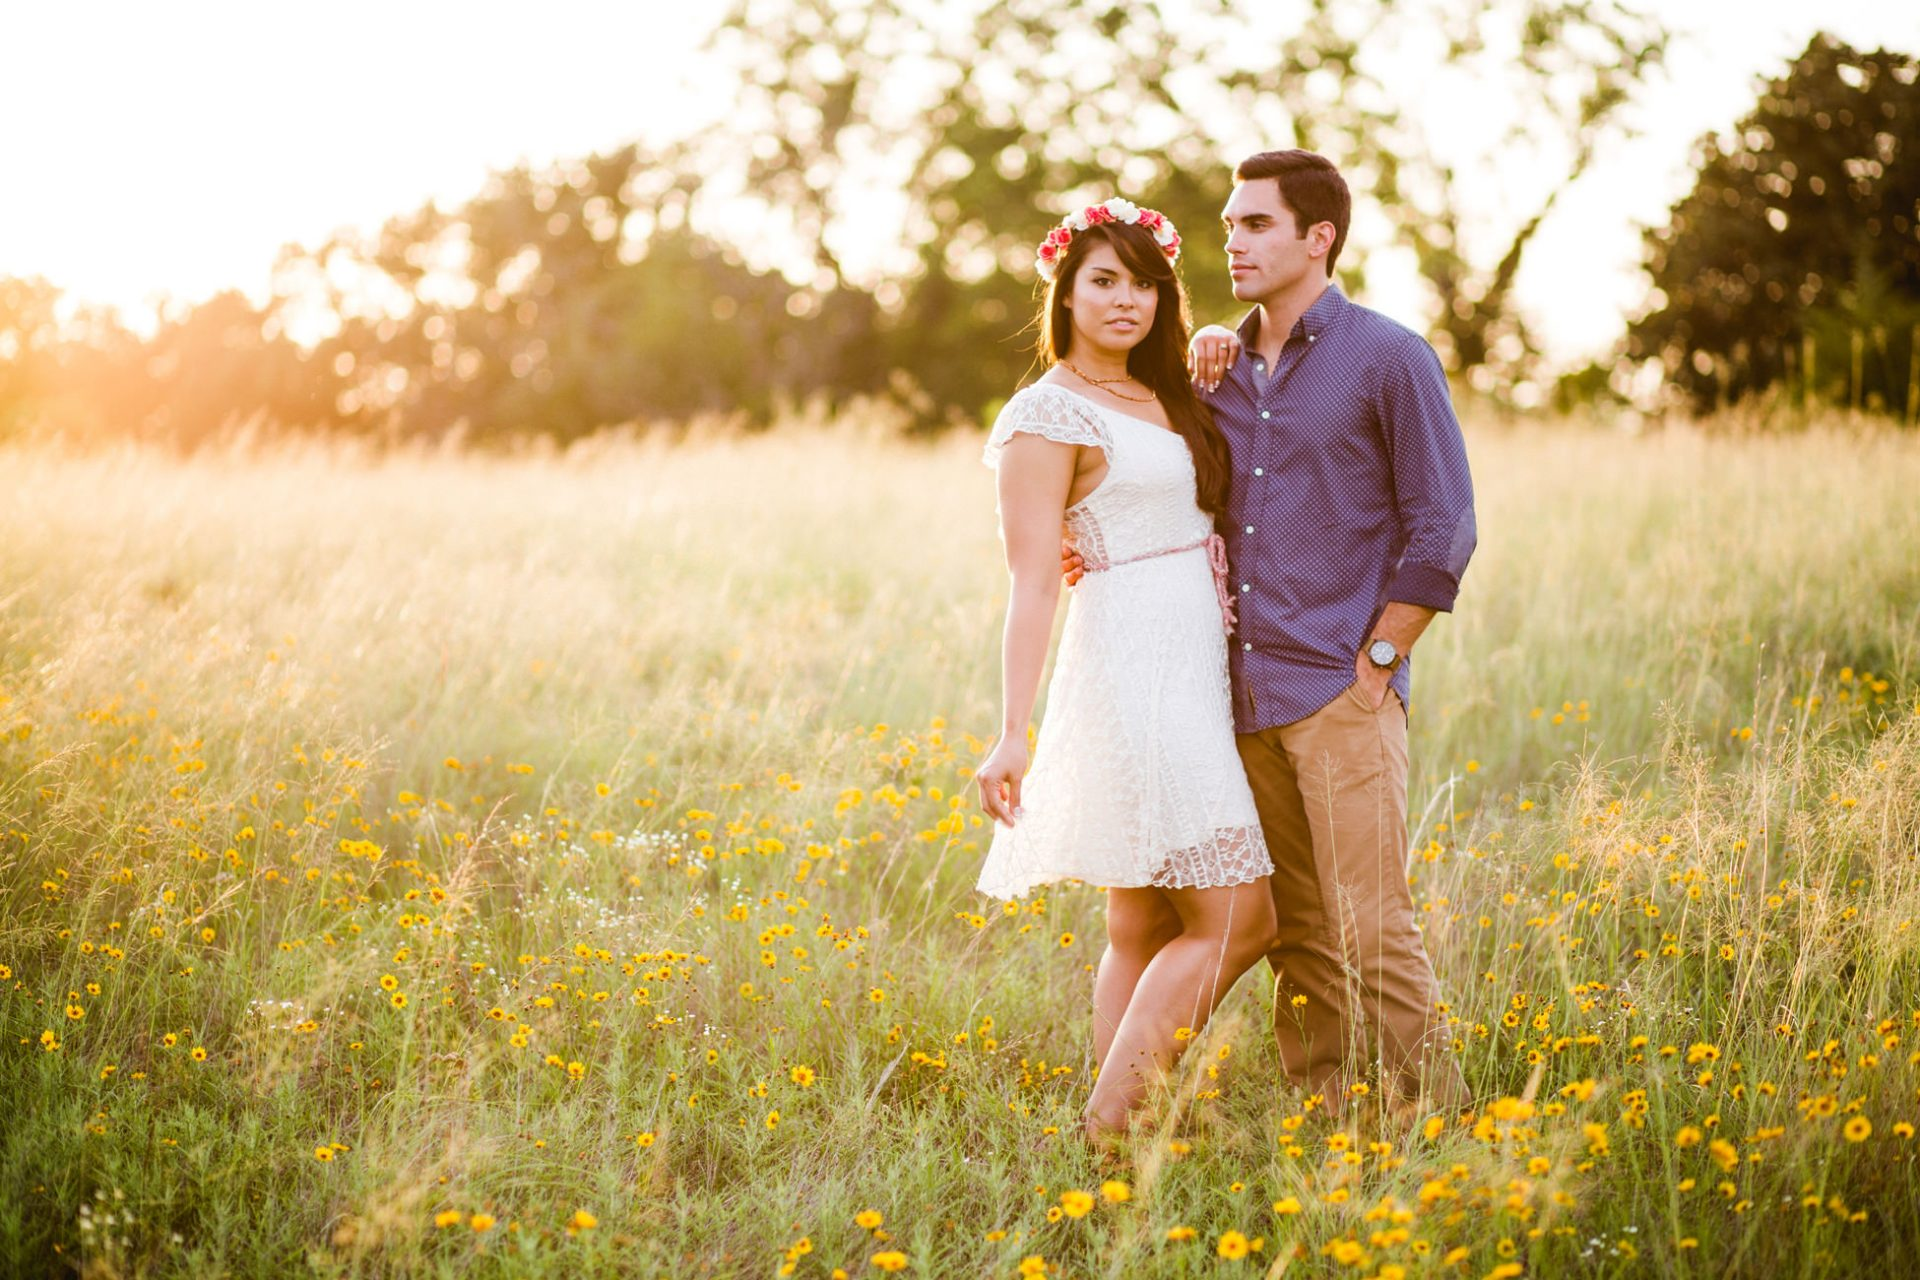 best-top-los-angeles-oklahoma-destination-engagement-photographer-hipster-modern-quirky-editorial-romantic-epic-37-boho-field-coahcella